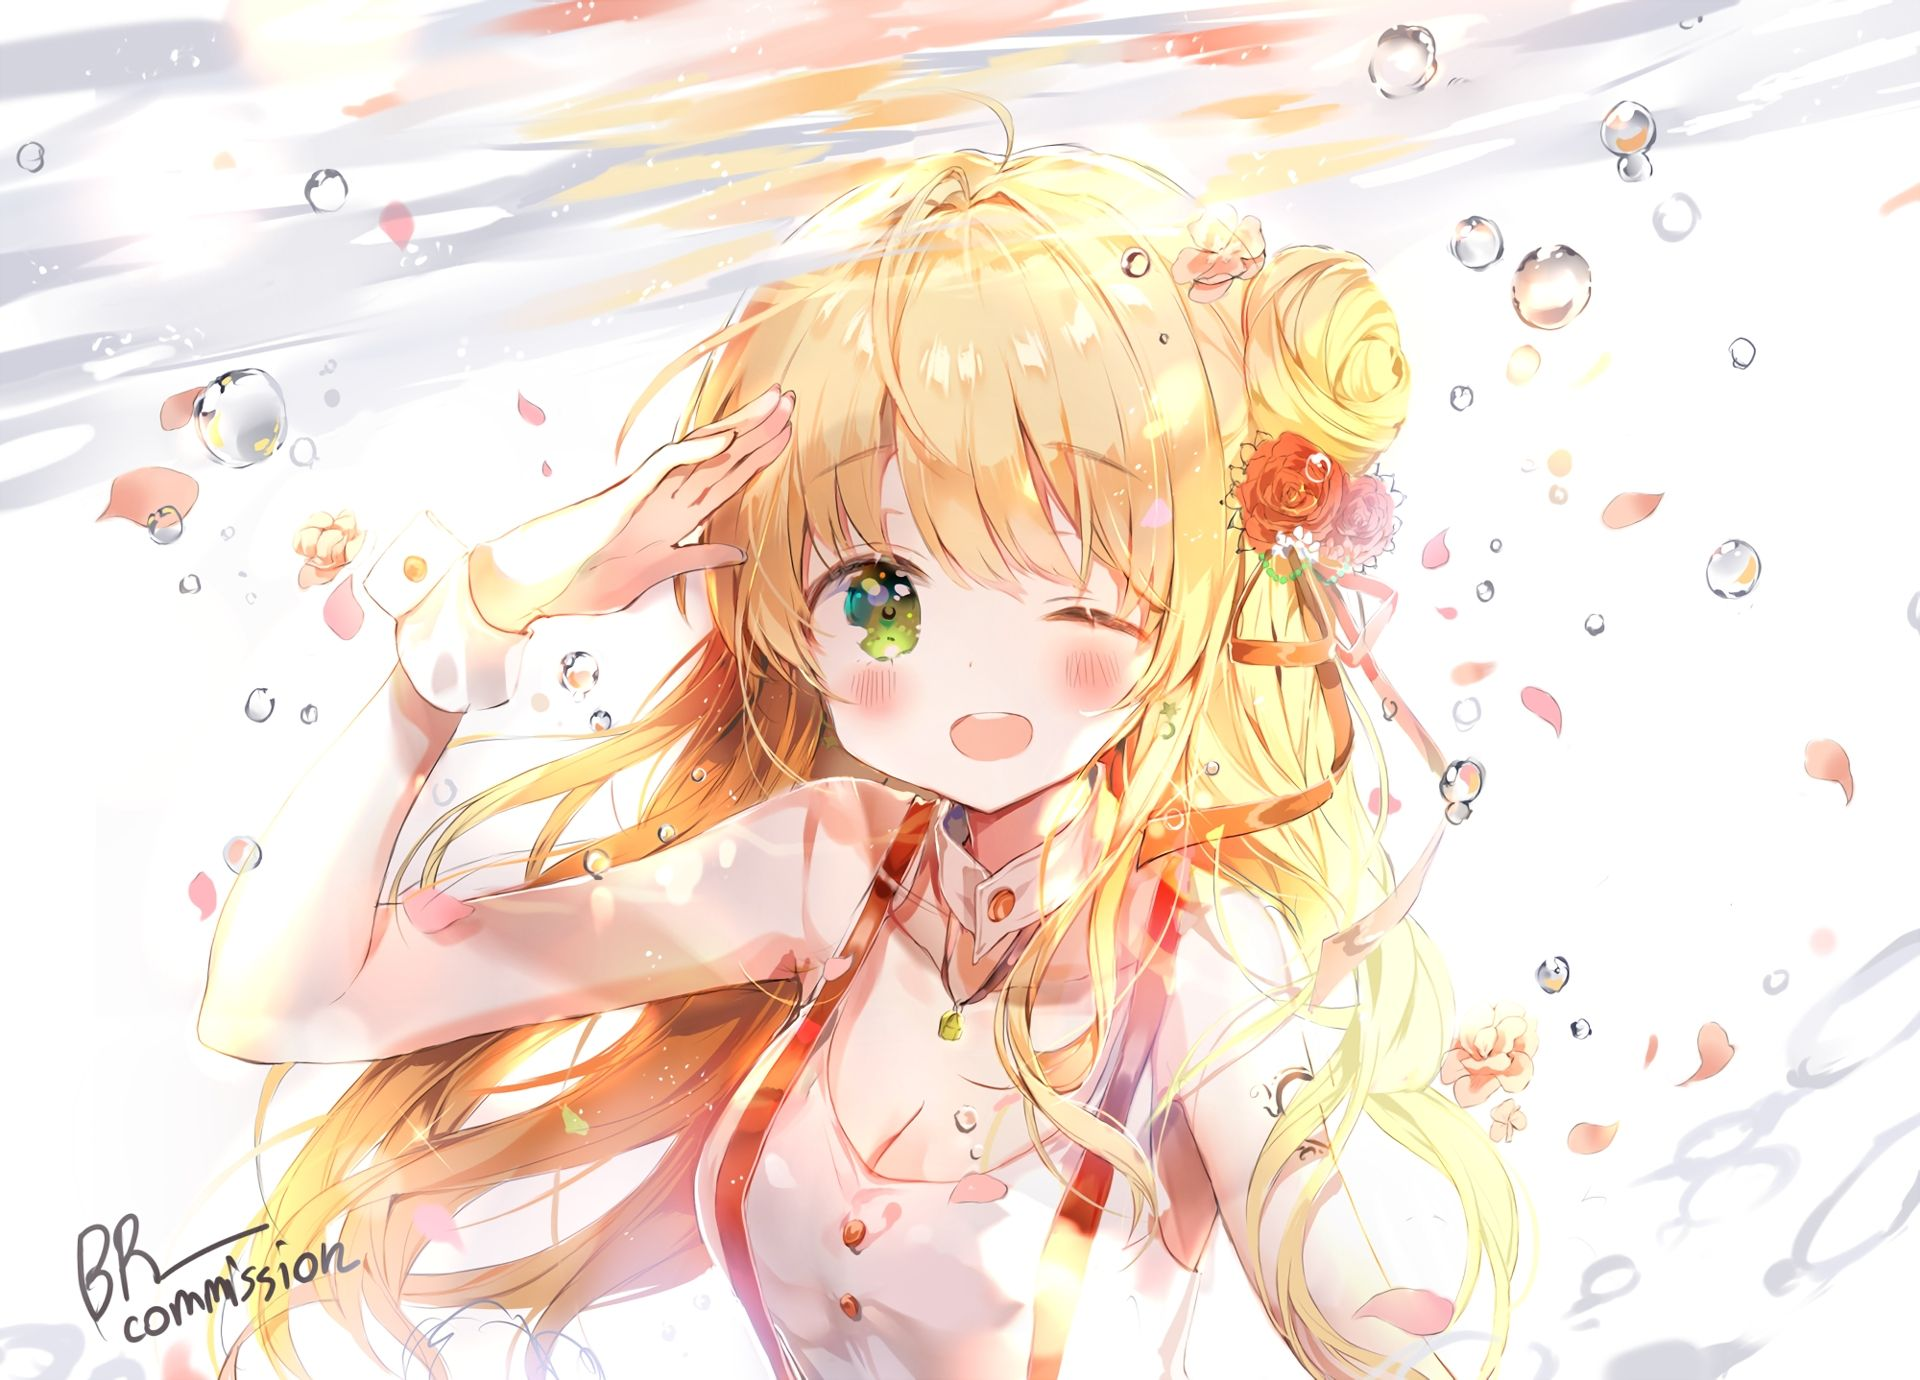 wink-blonde-anime-girl-beautiful | anime wallpaper | pinterest